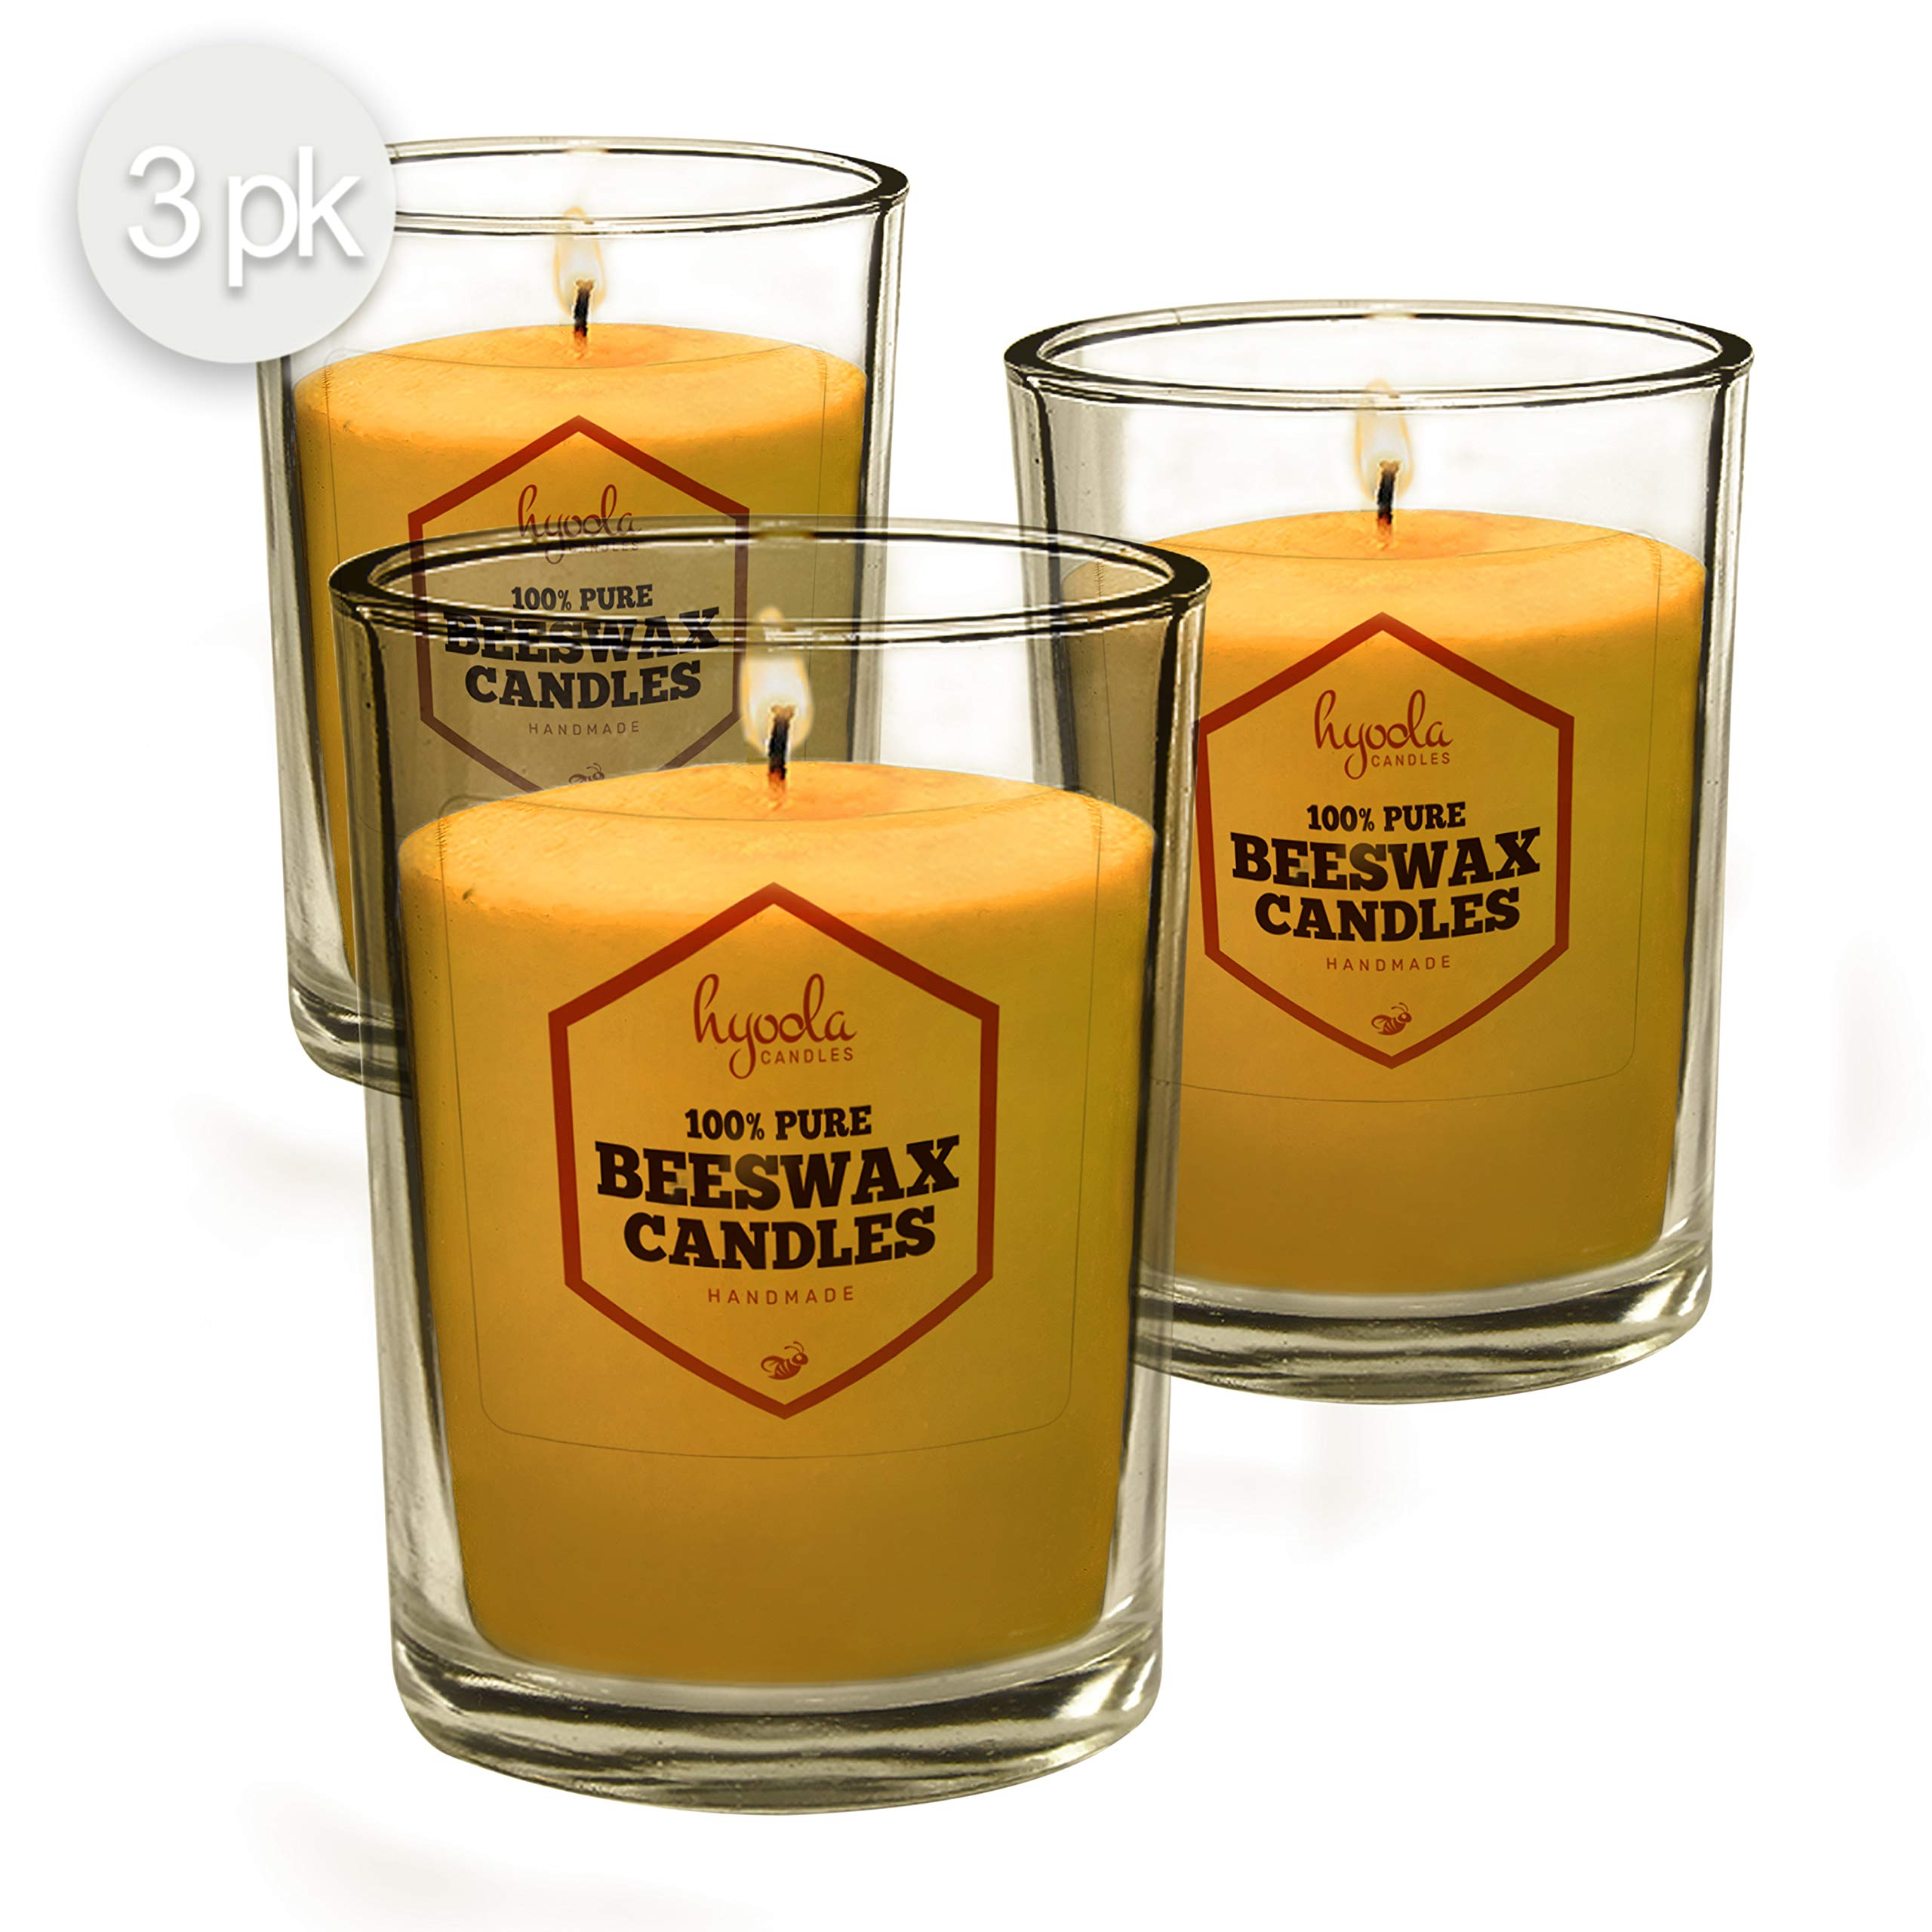 Hyoola Pure Beeswax Votive Candles, 3 Pack Yellow Unscented Decorative Candle for Party Centerpieces, Home Decor and Dinner Parties - Long Lasting Burn Time, Clear Glass Cup,3 oz